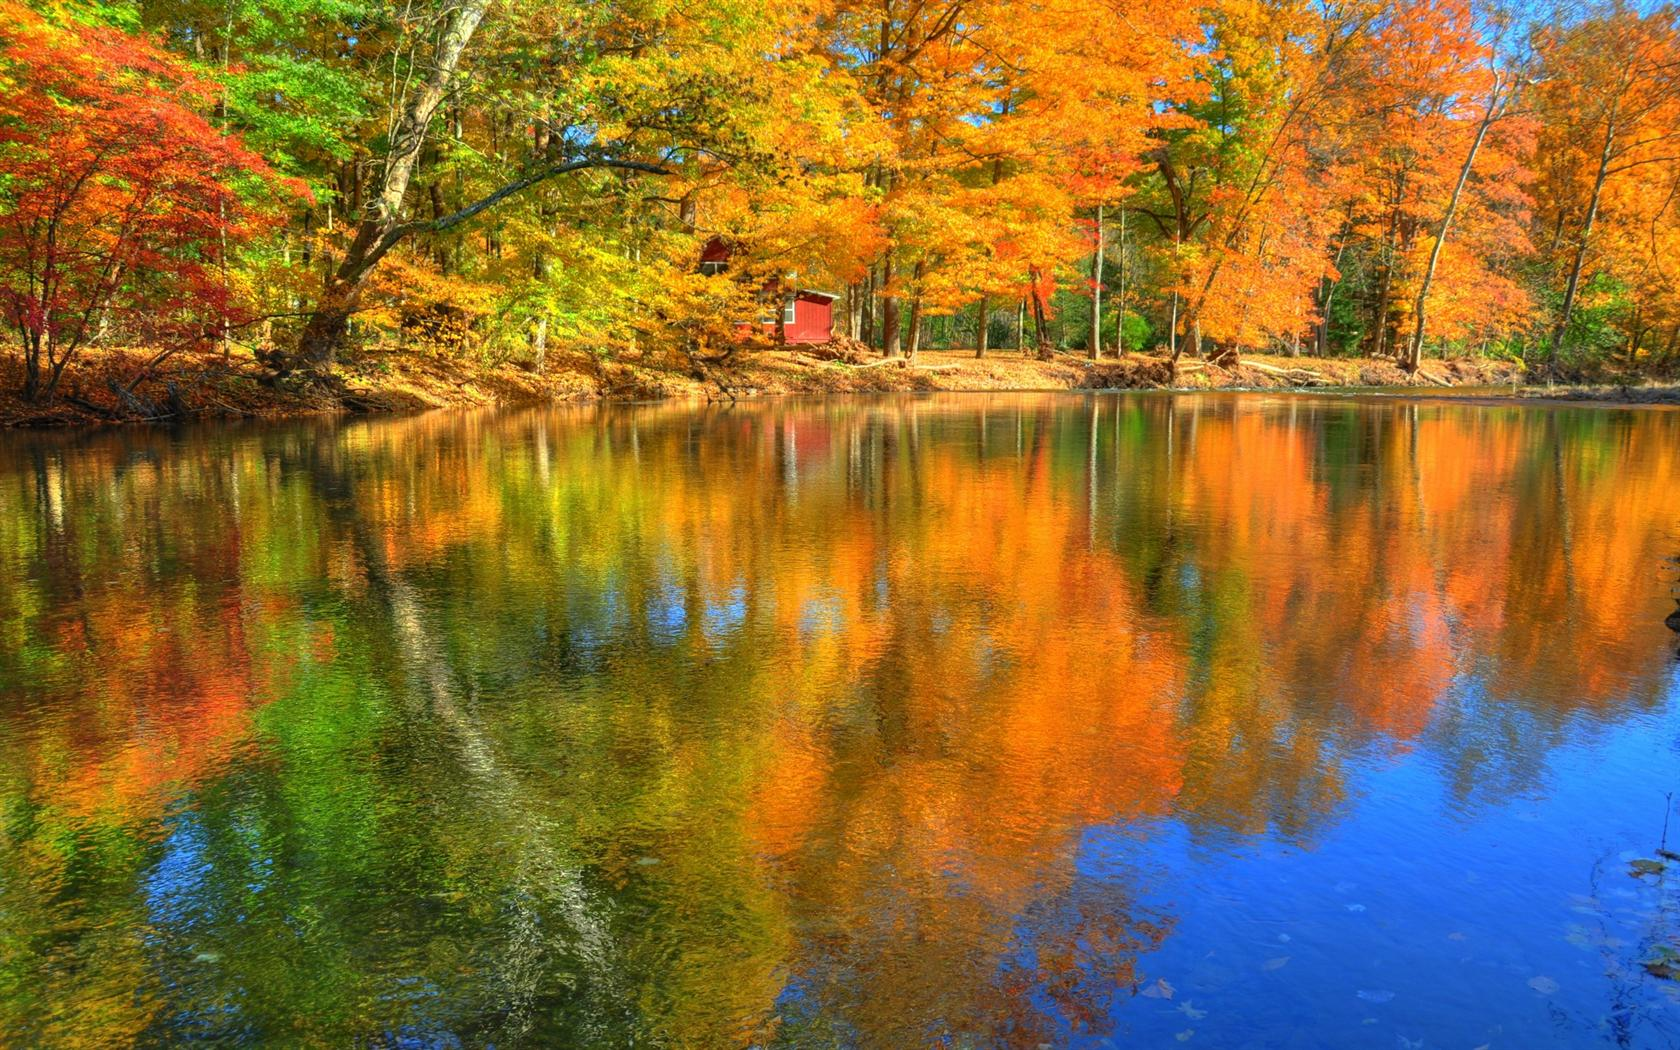 Reflections of Autumn Desktop Wallpaper Background Desktop Wallpaper 1680x1050